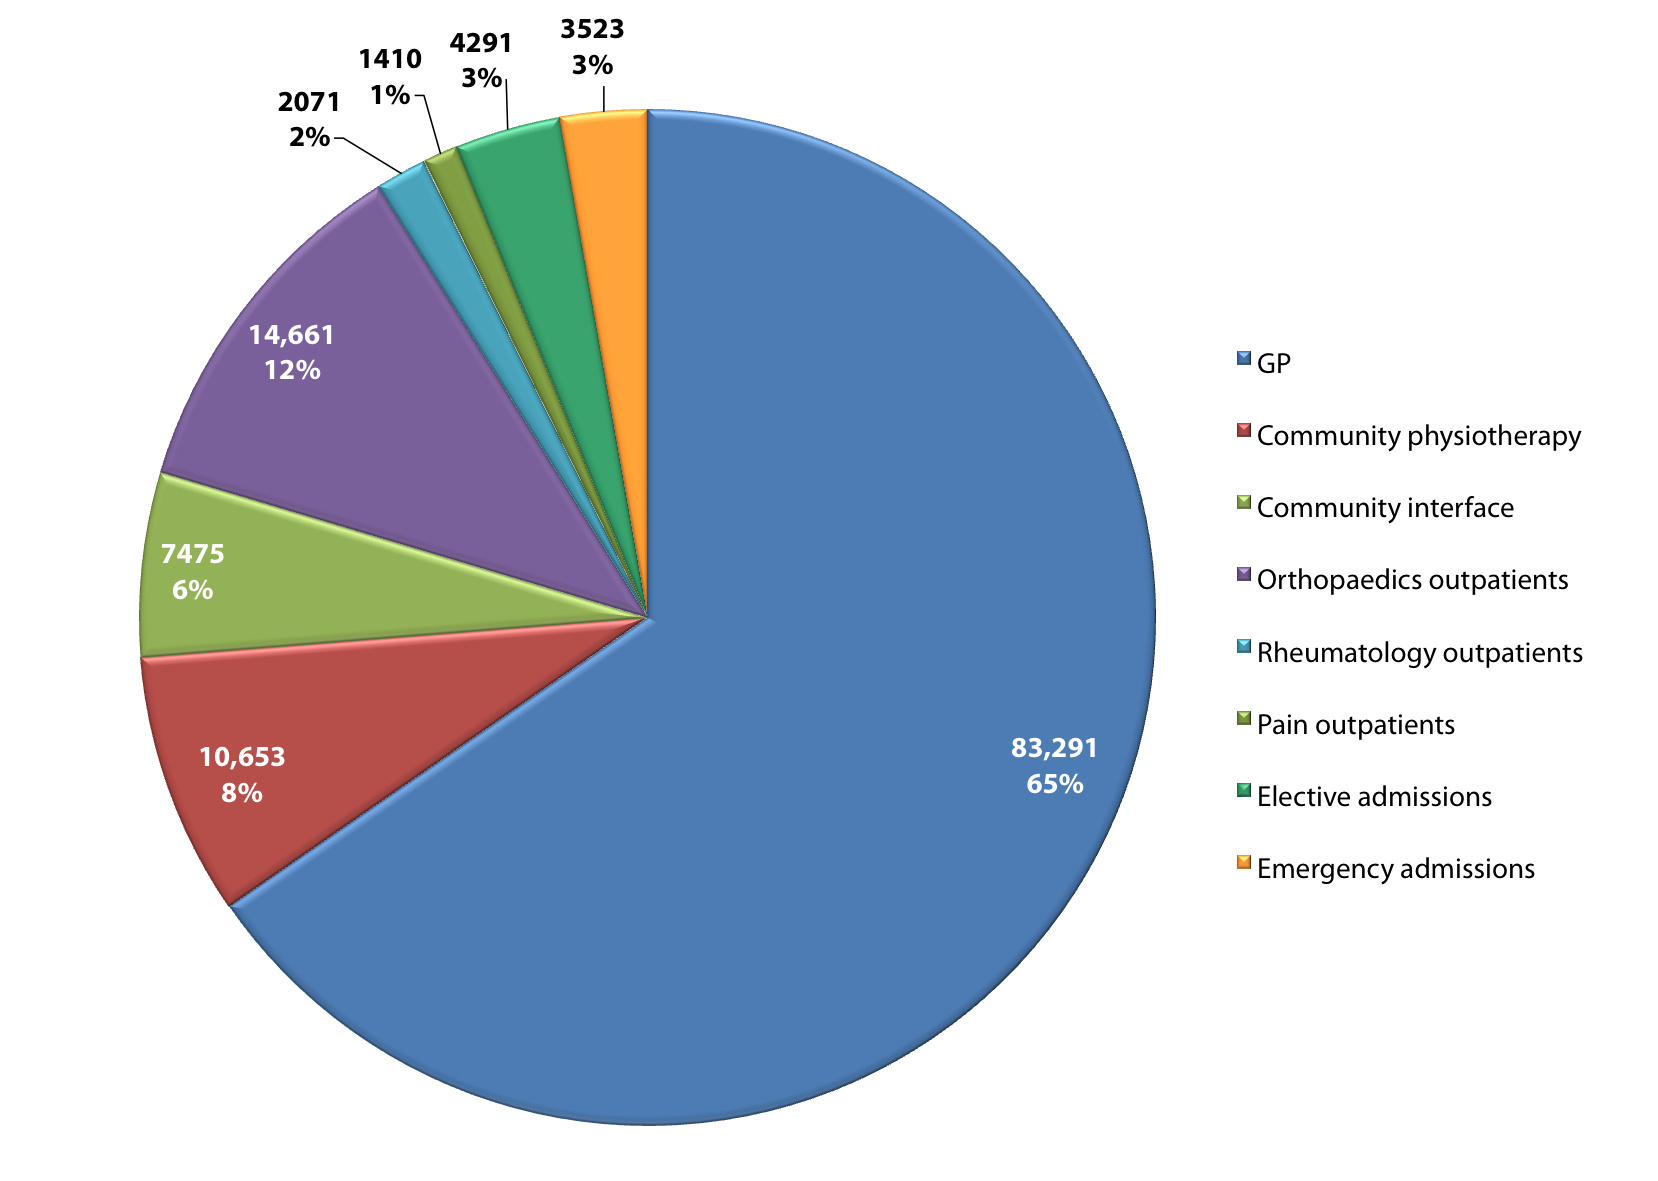 Pie chart showing the numbers (%) of patients seen with musculoskeletal conditions, Ealing 2013